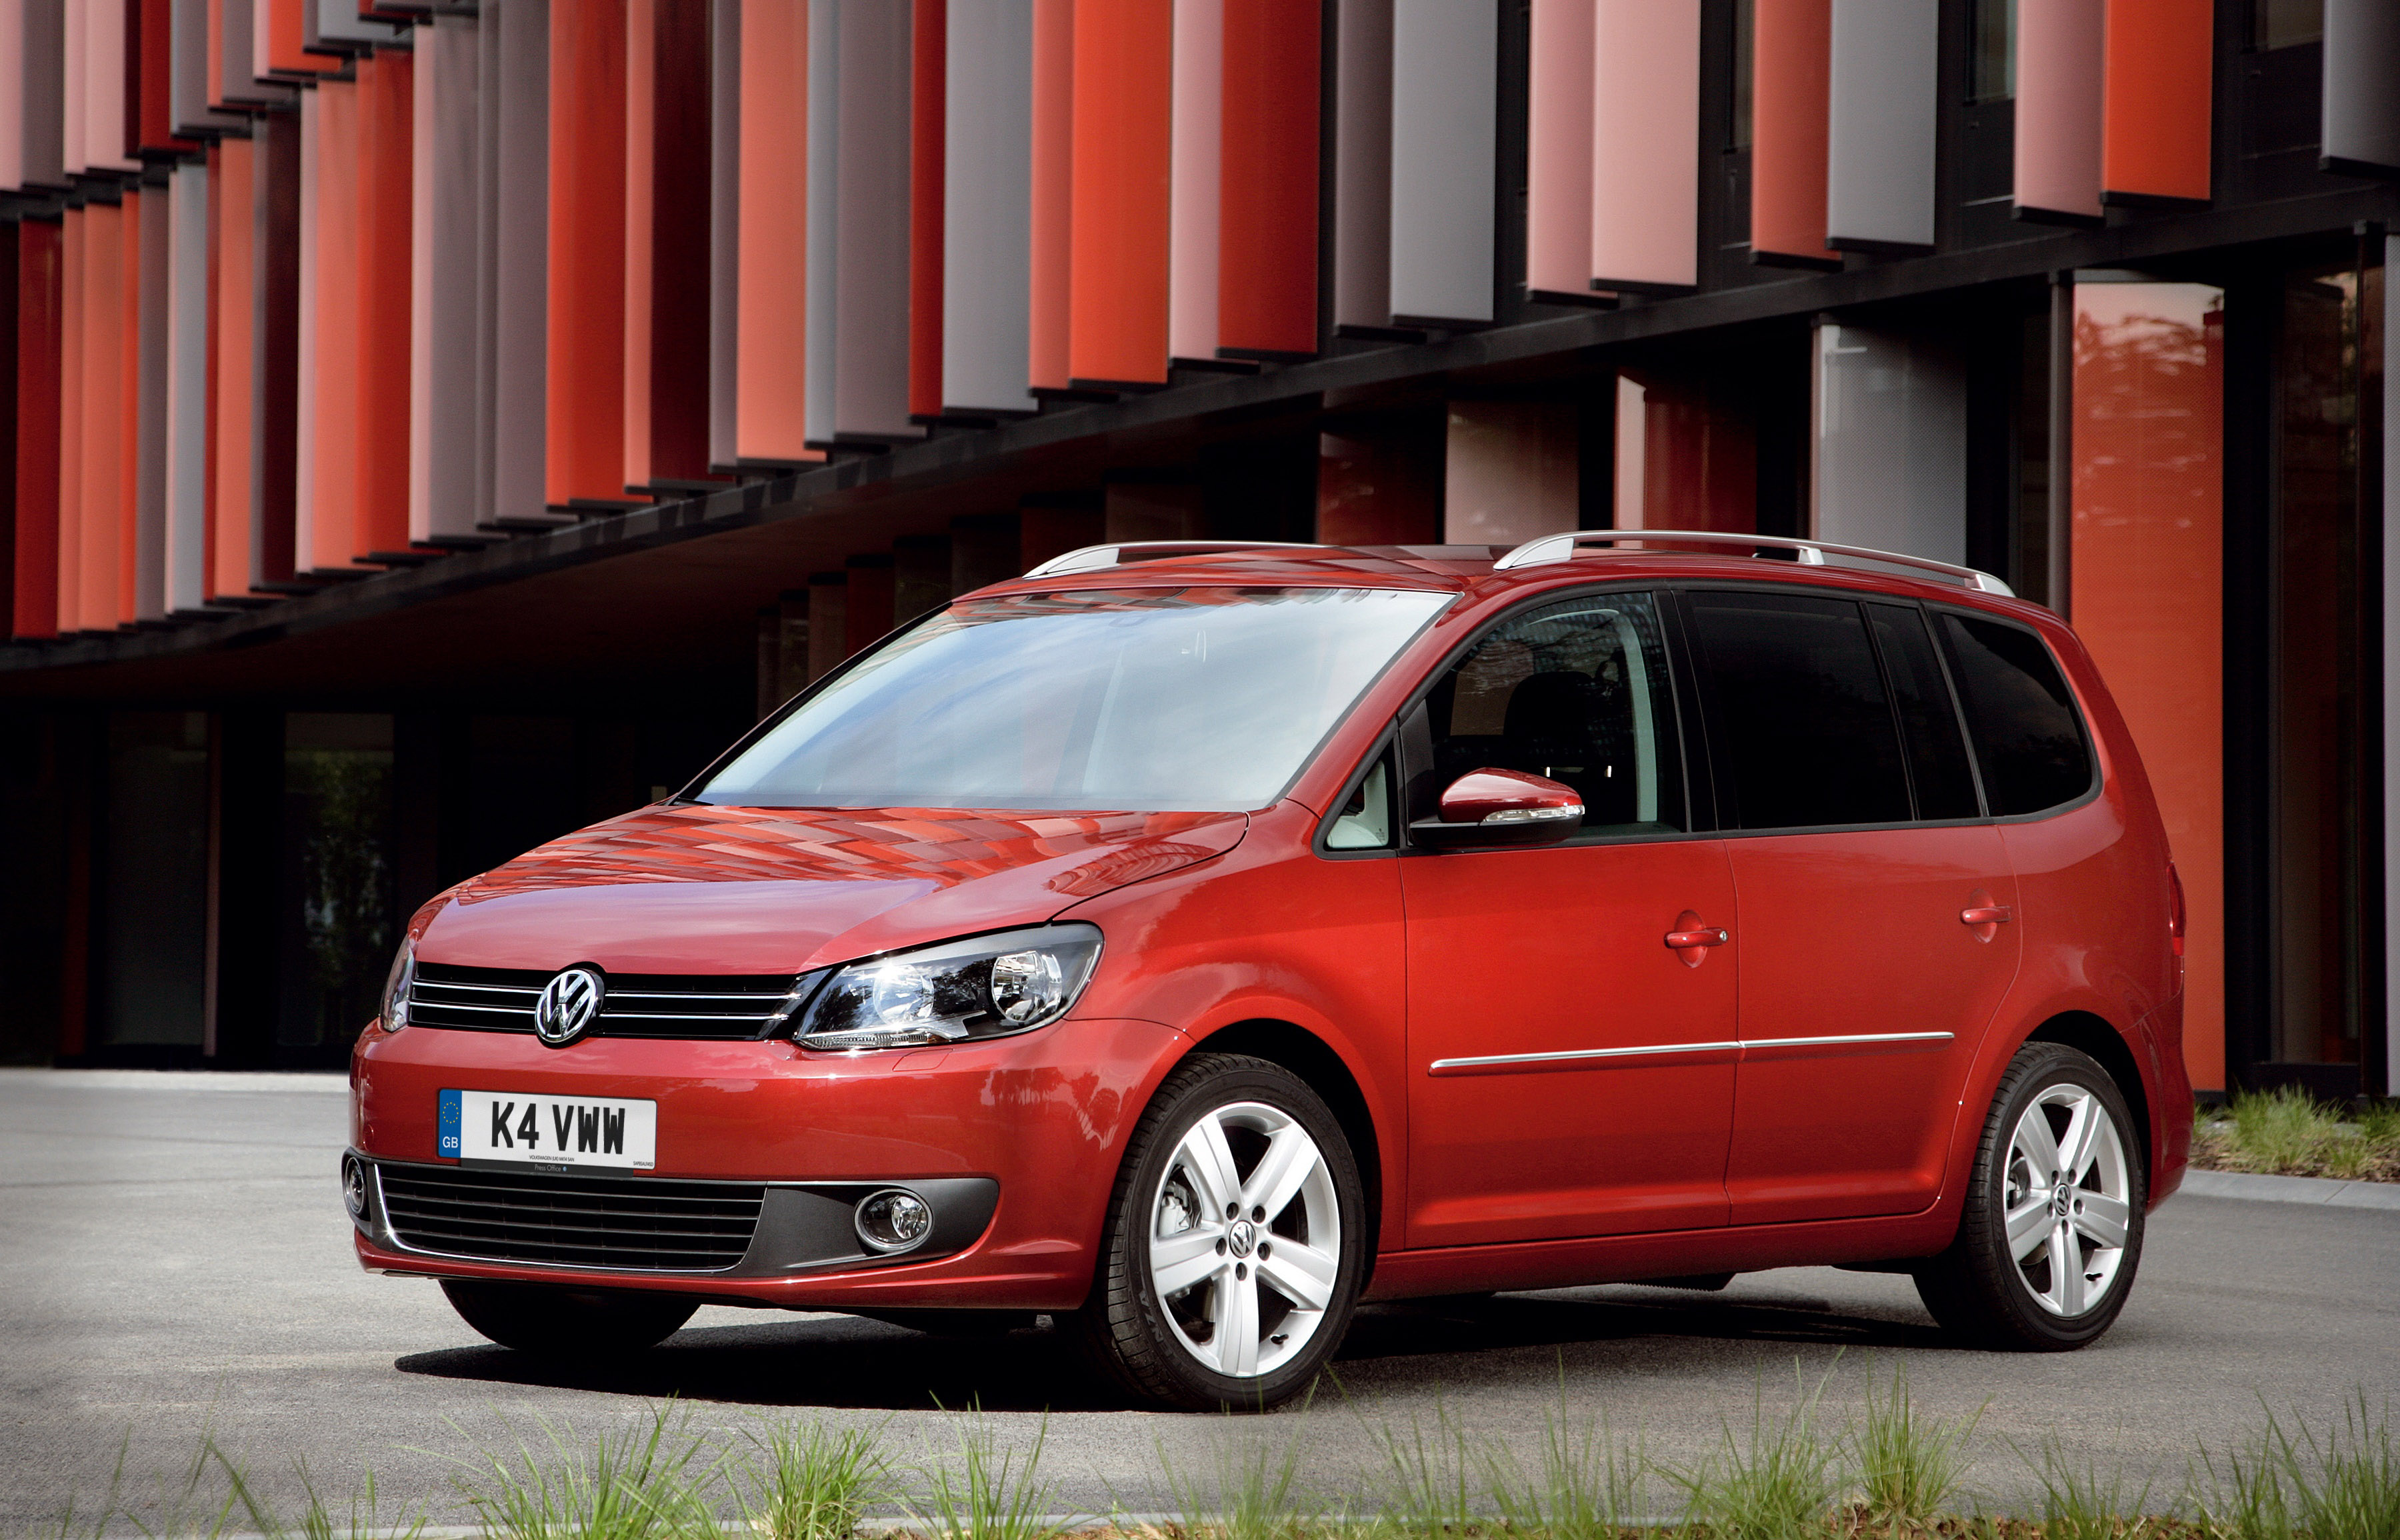 2011 volkswagen touran mpv an excellent choice. Black Bedroom Furniture Sets. Home Design Ideas